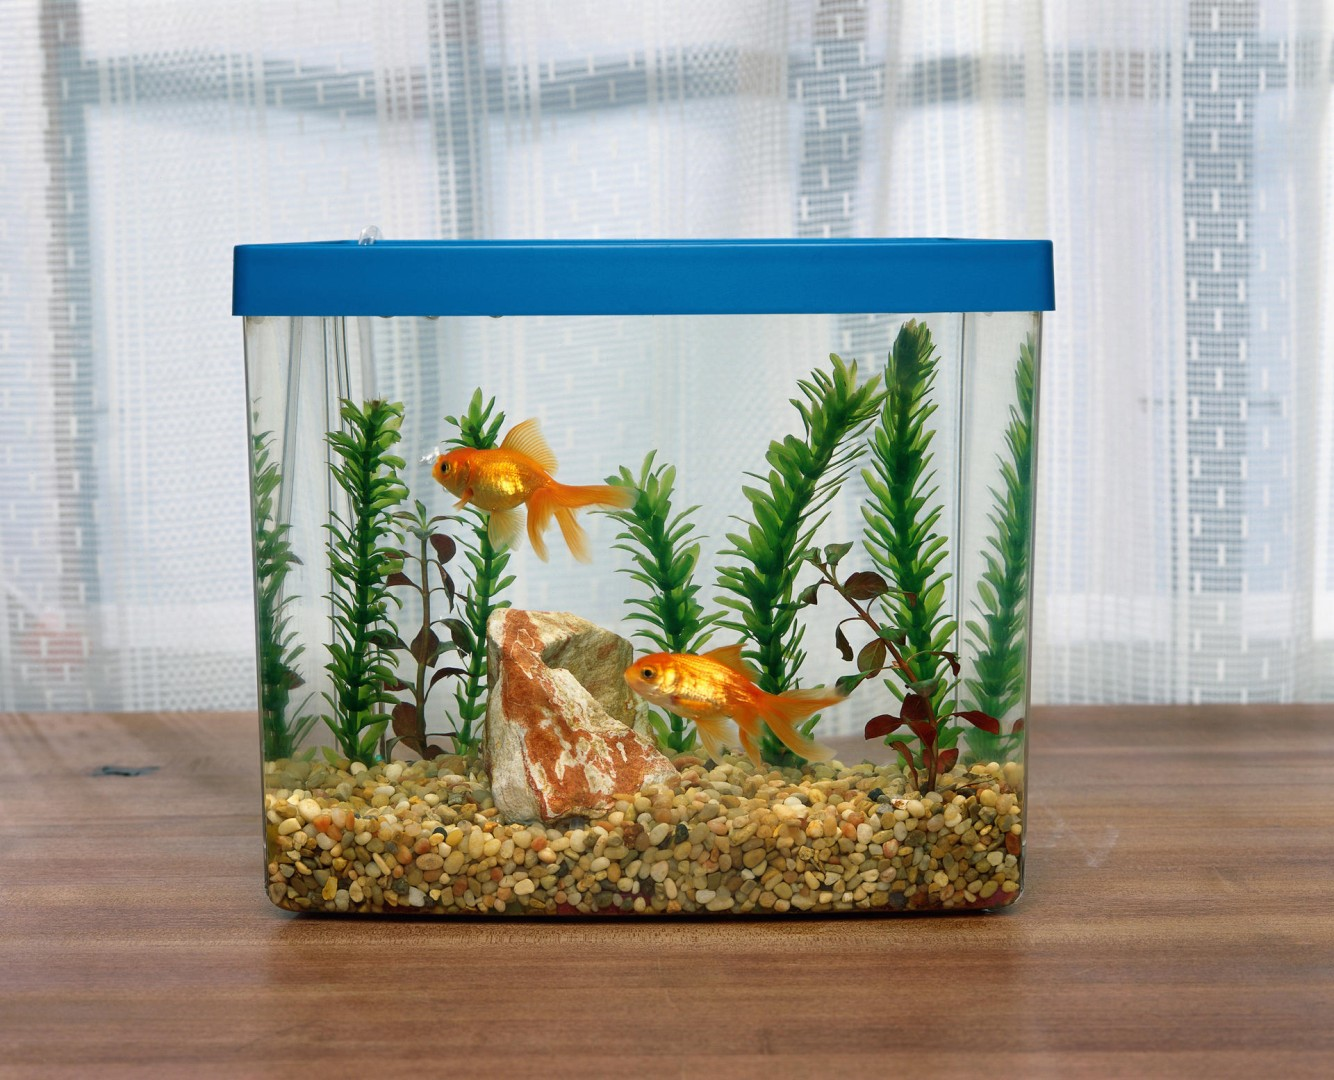 Fish-keeping - an easy, inexpensive, relaxing hobby | South China